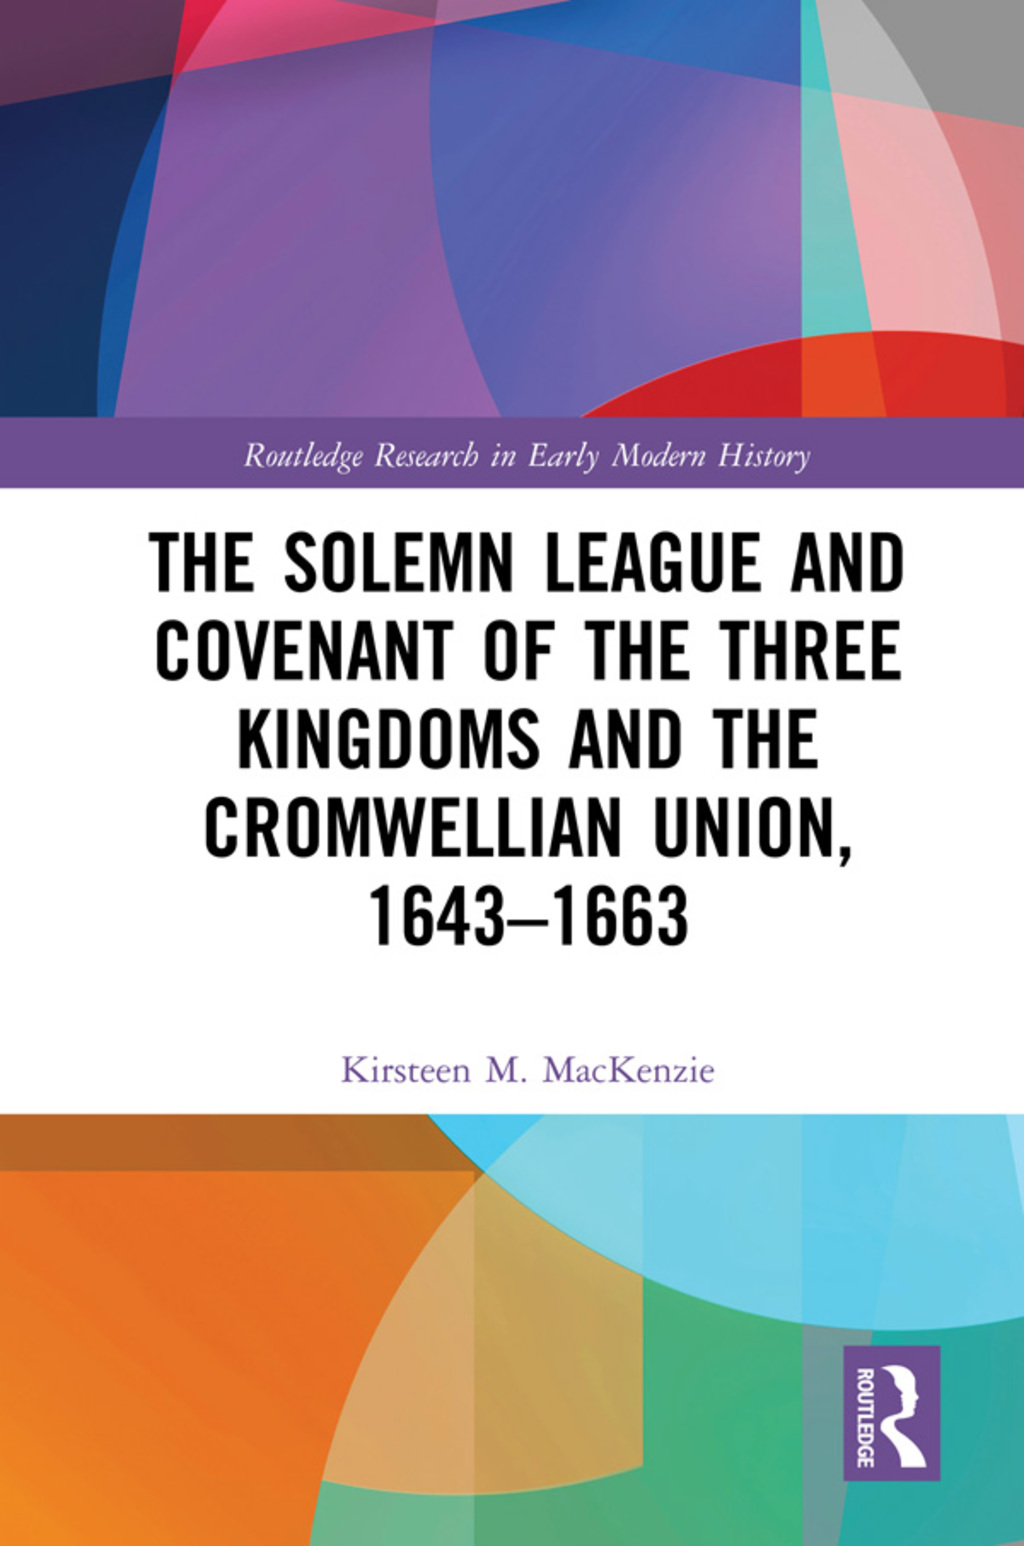 The Solemn League and Covenant of the Three Kingdoms and the Cromwellian Union, 1643-1663 (ebook) eBooks